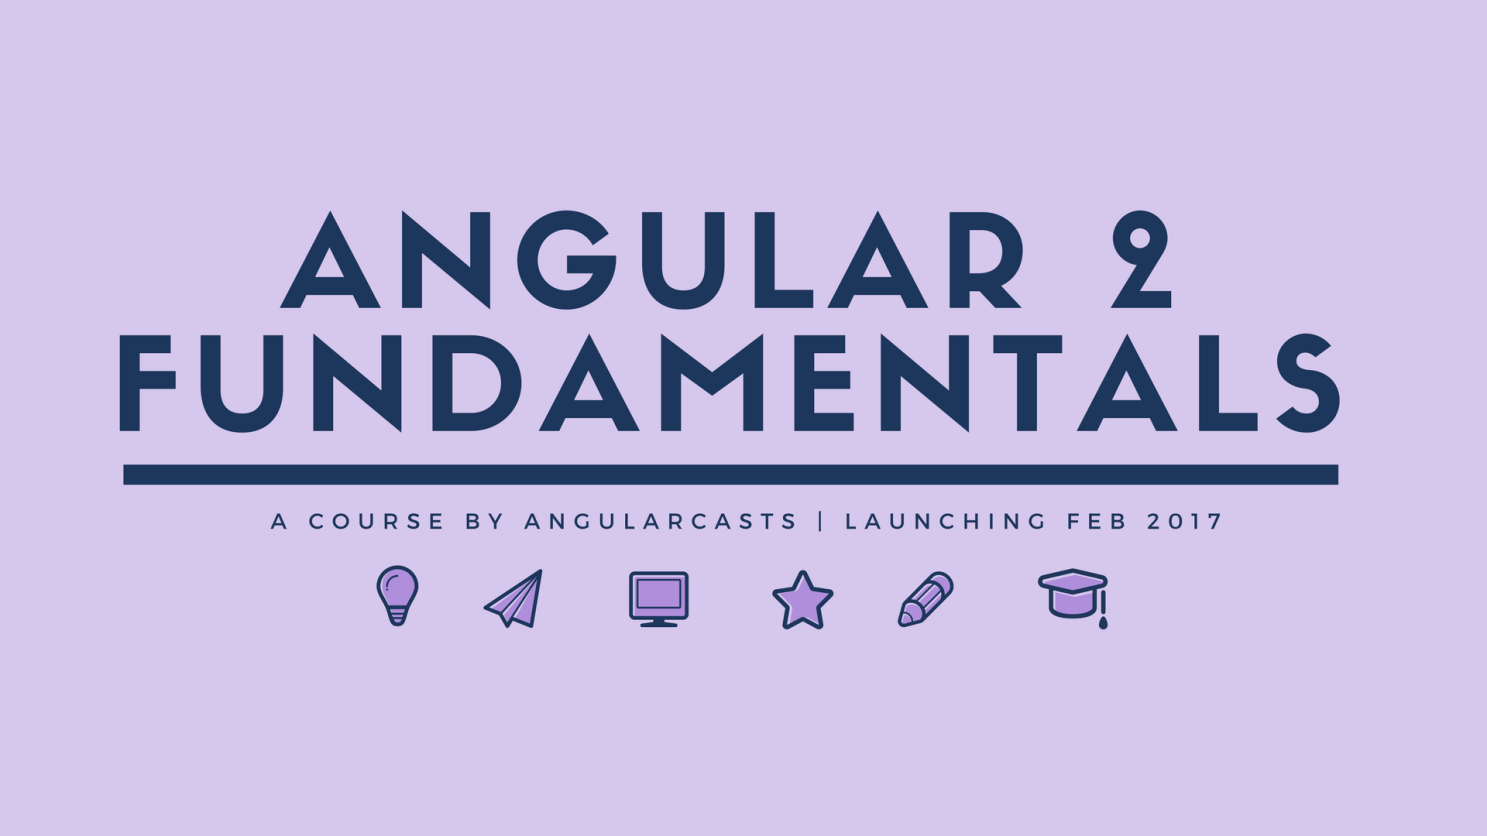 Angular 2 Fundamentals Course